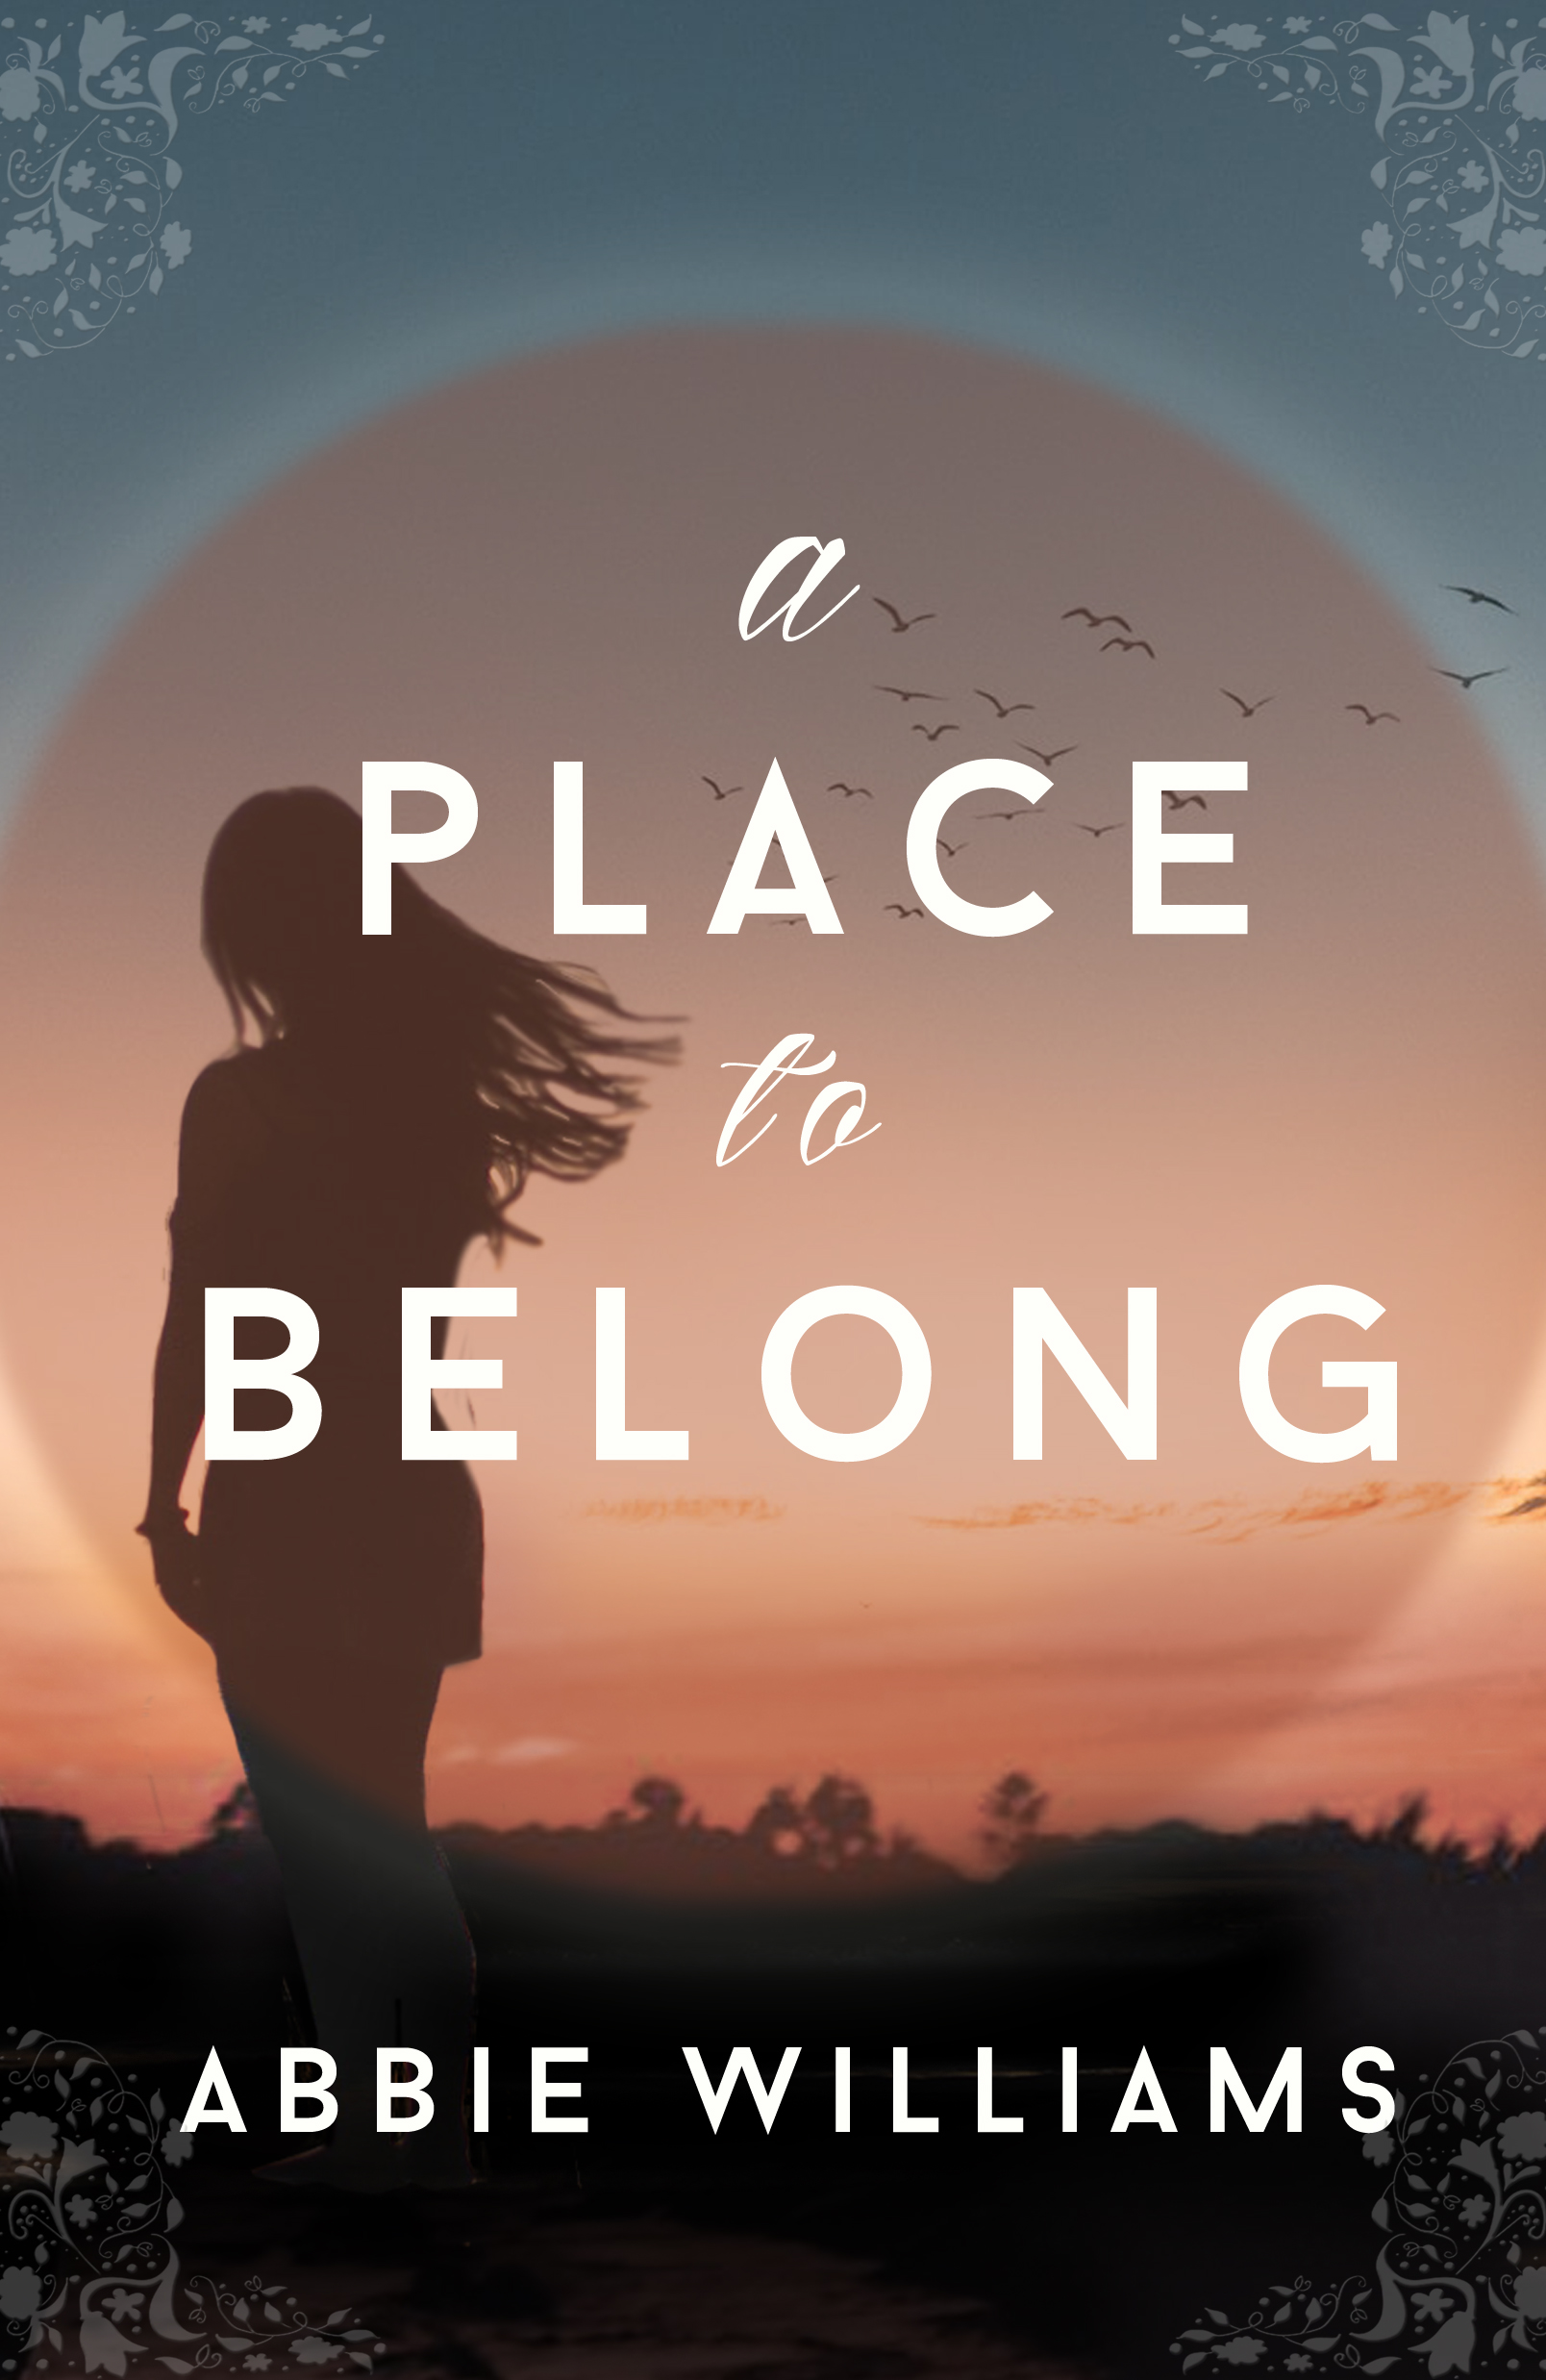 When Does A Place To Belong By Abbie Williams Come Out? 2020 Romance Releases